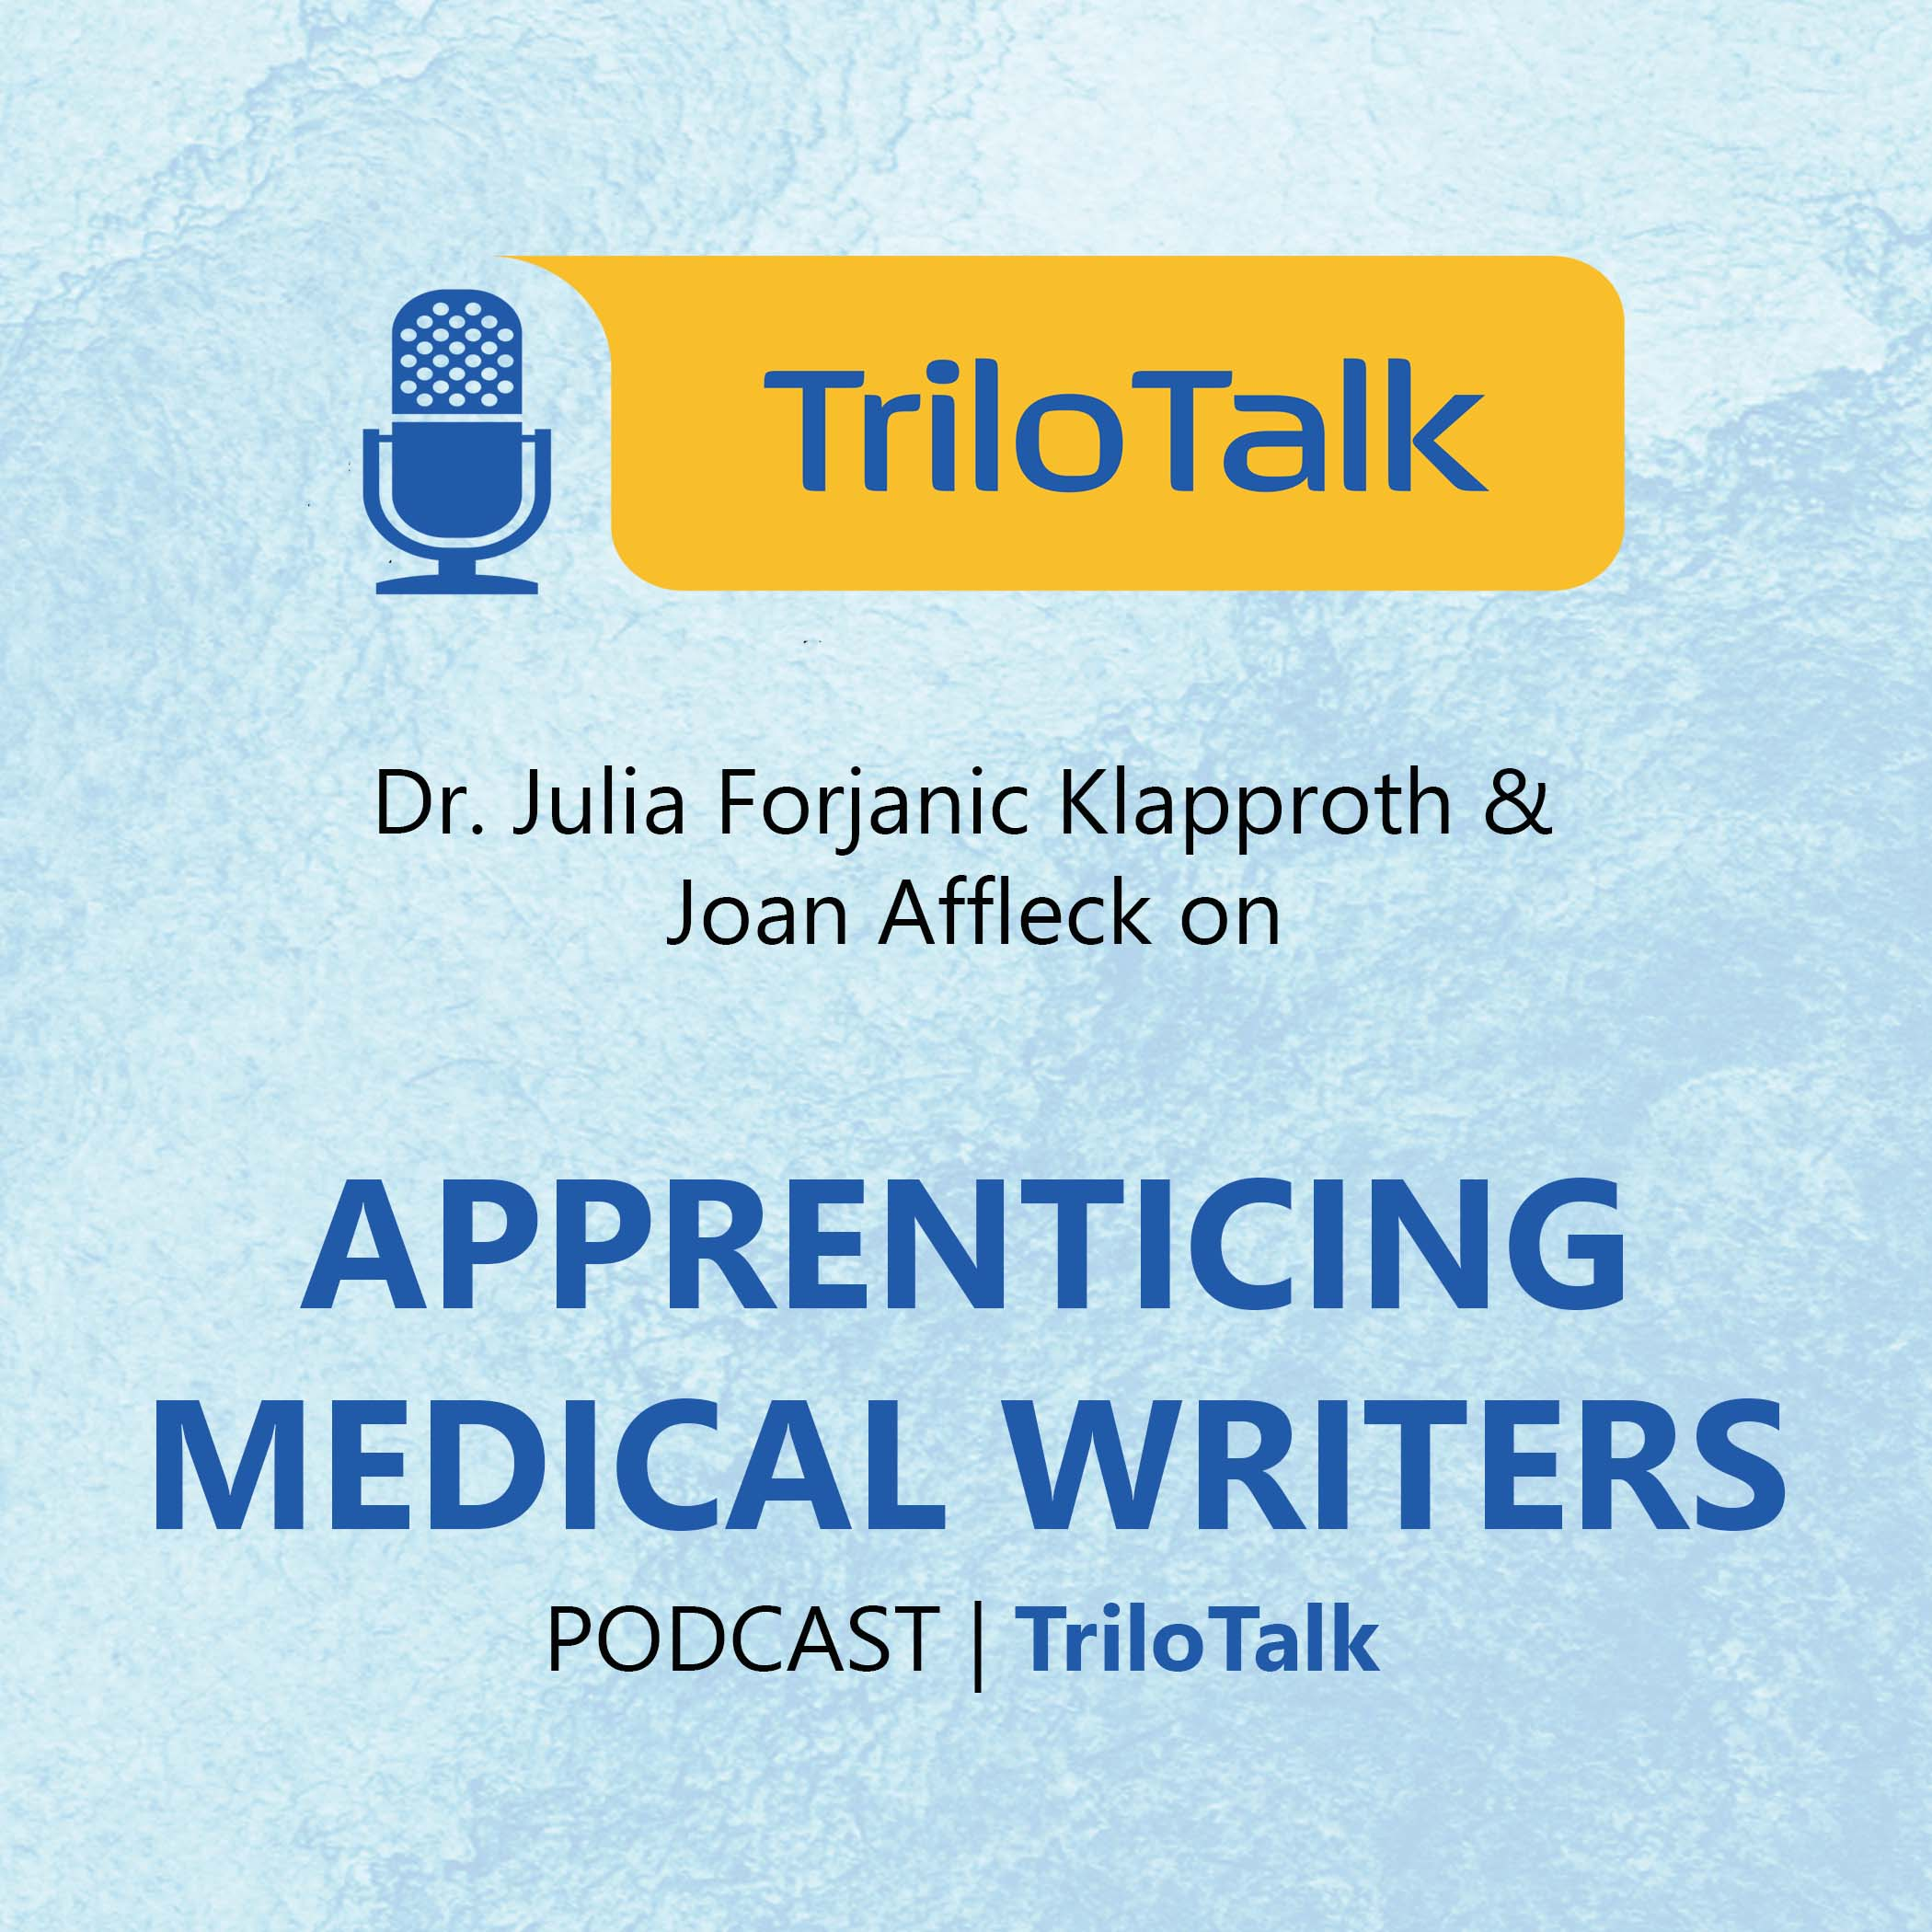 Episode 6 - APPRENTICING MEDICAL WRITERS - Thmbnail